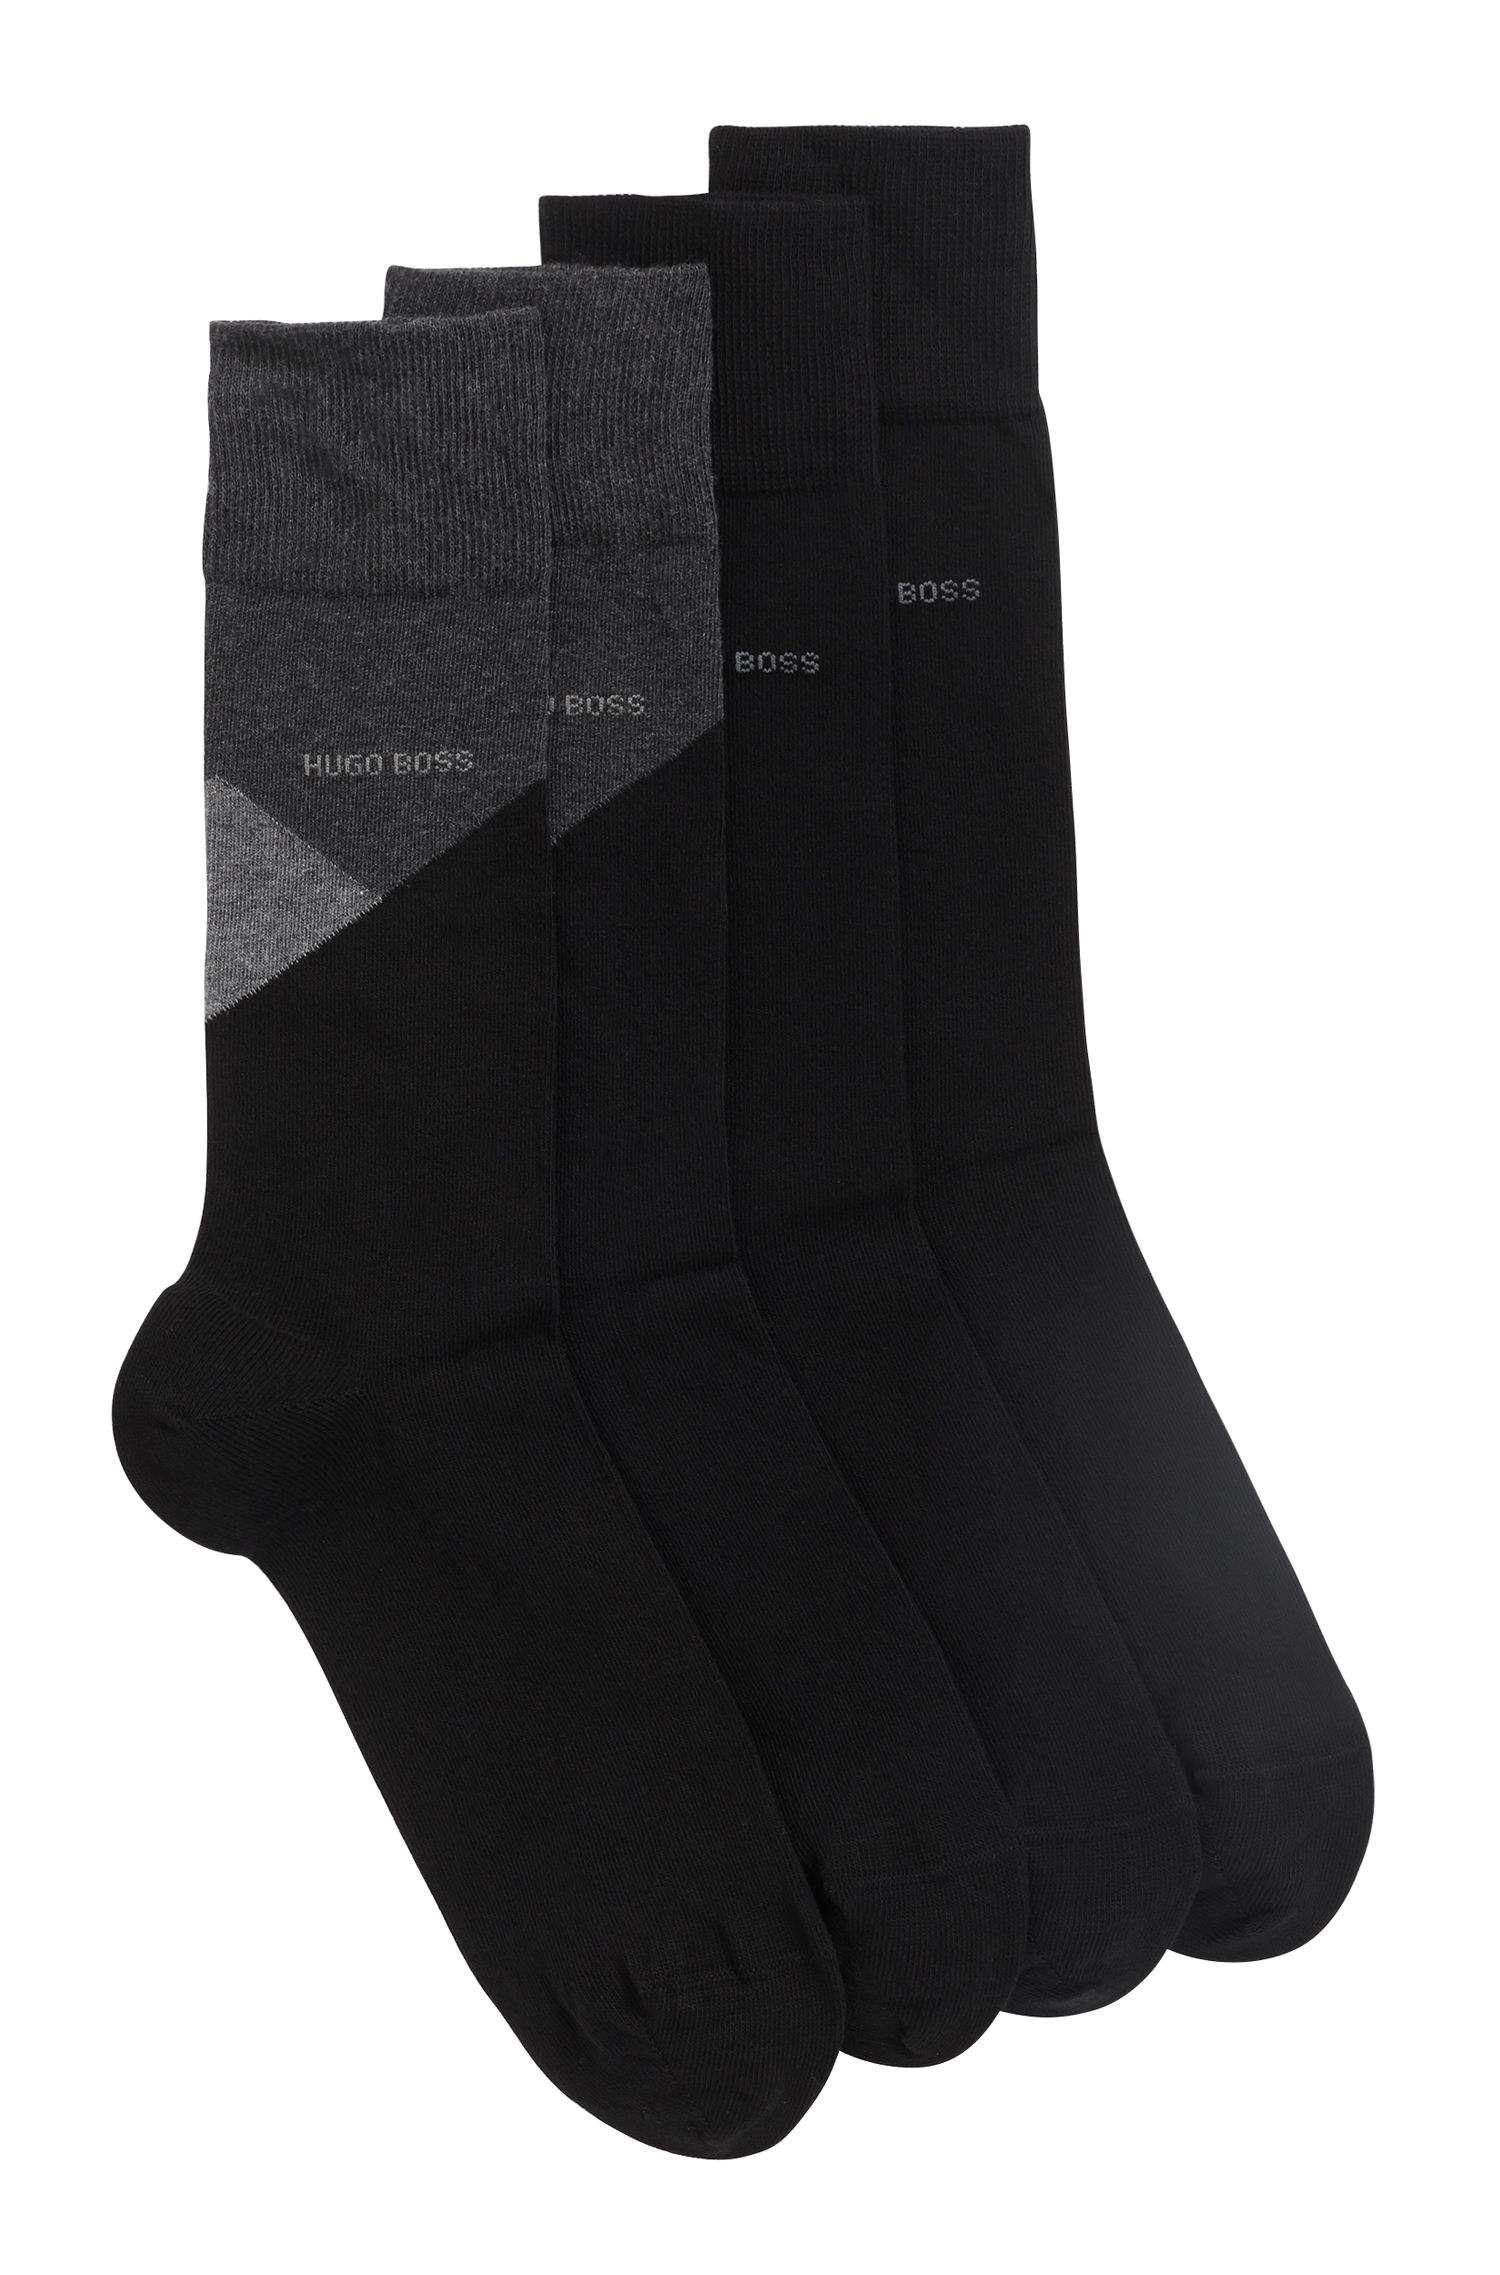 Two-pack of socks in a combed-cotton blend, Black